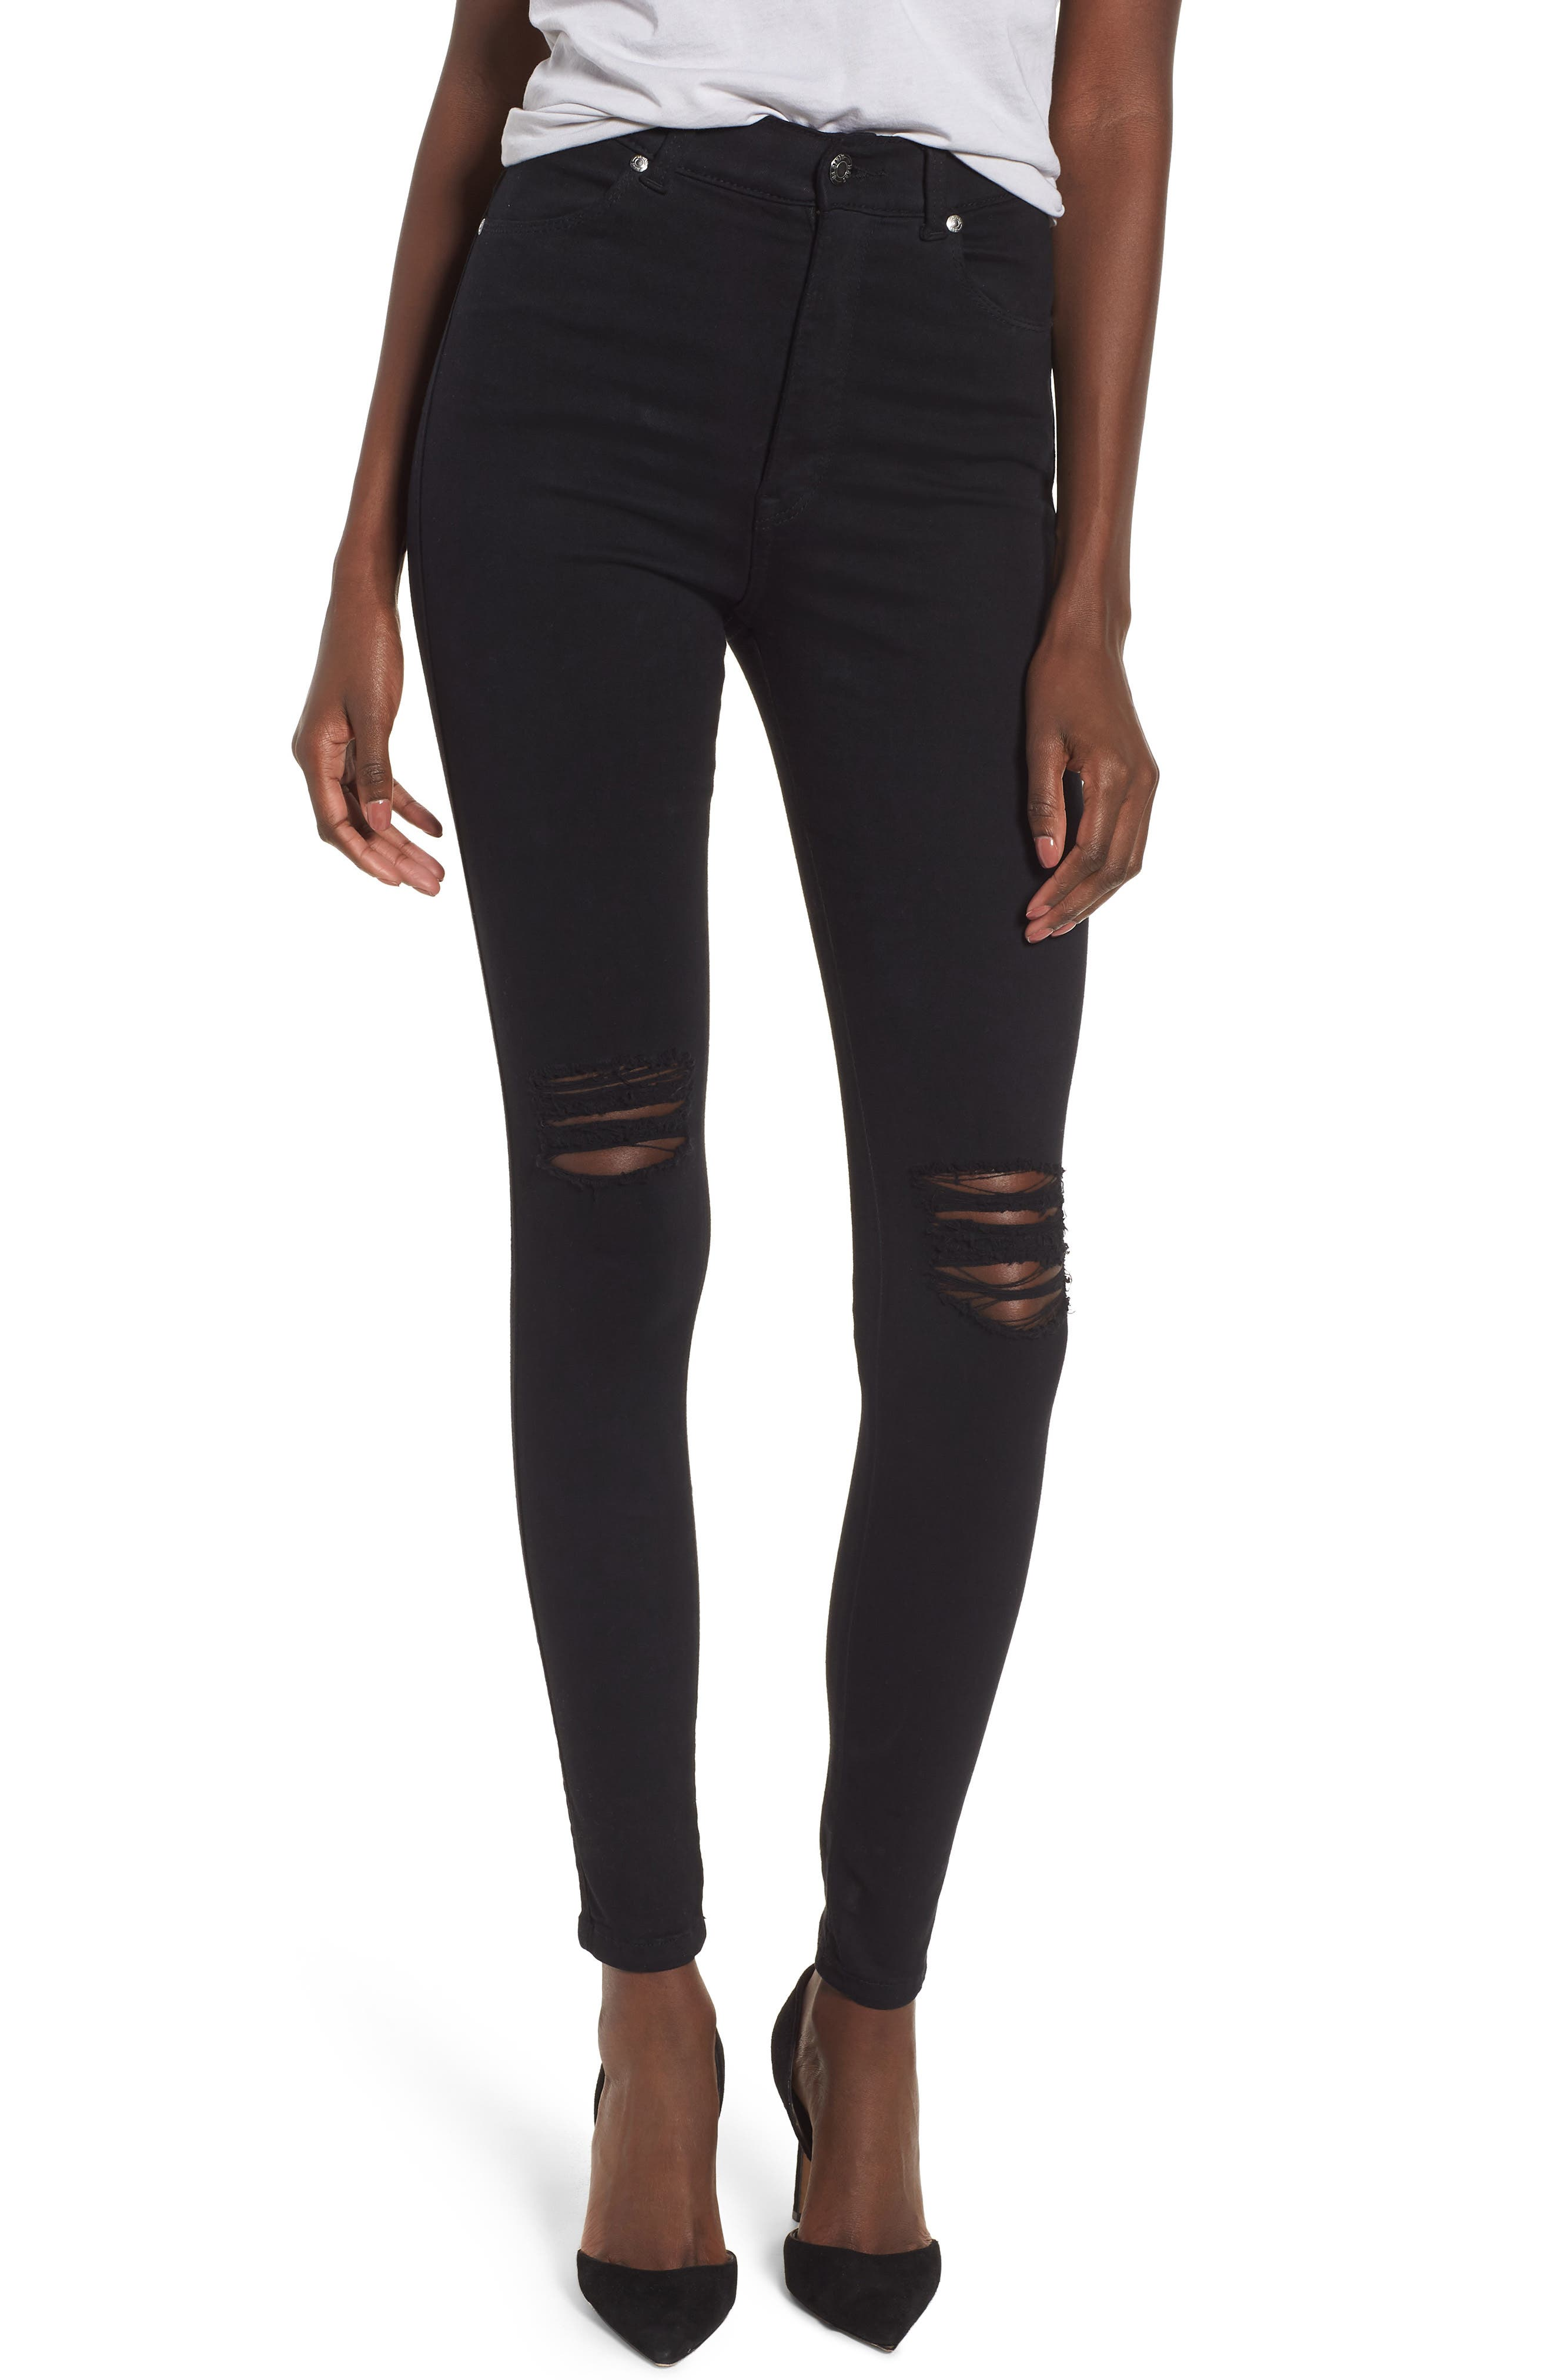 Moxy Ripped Knee Skinny Jeans,                             Main thumbnail 1, color,                             003